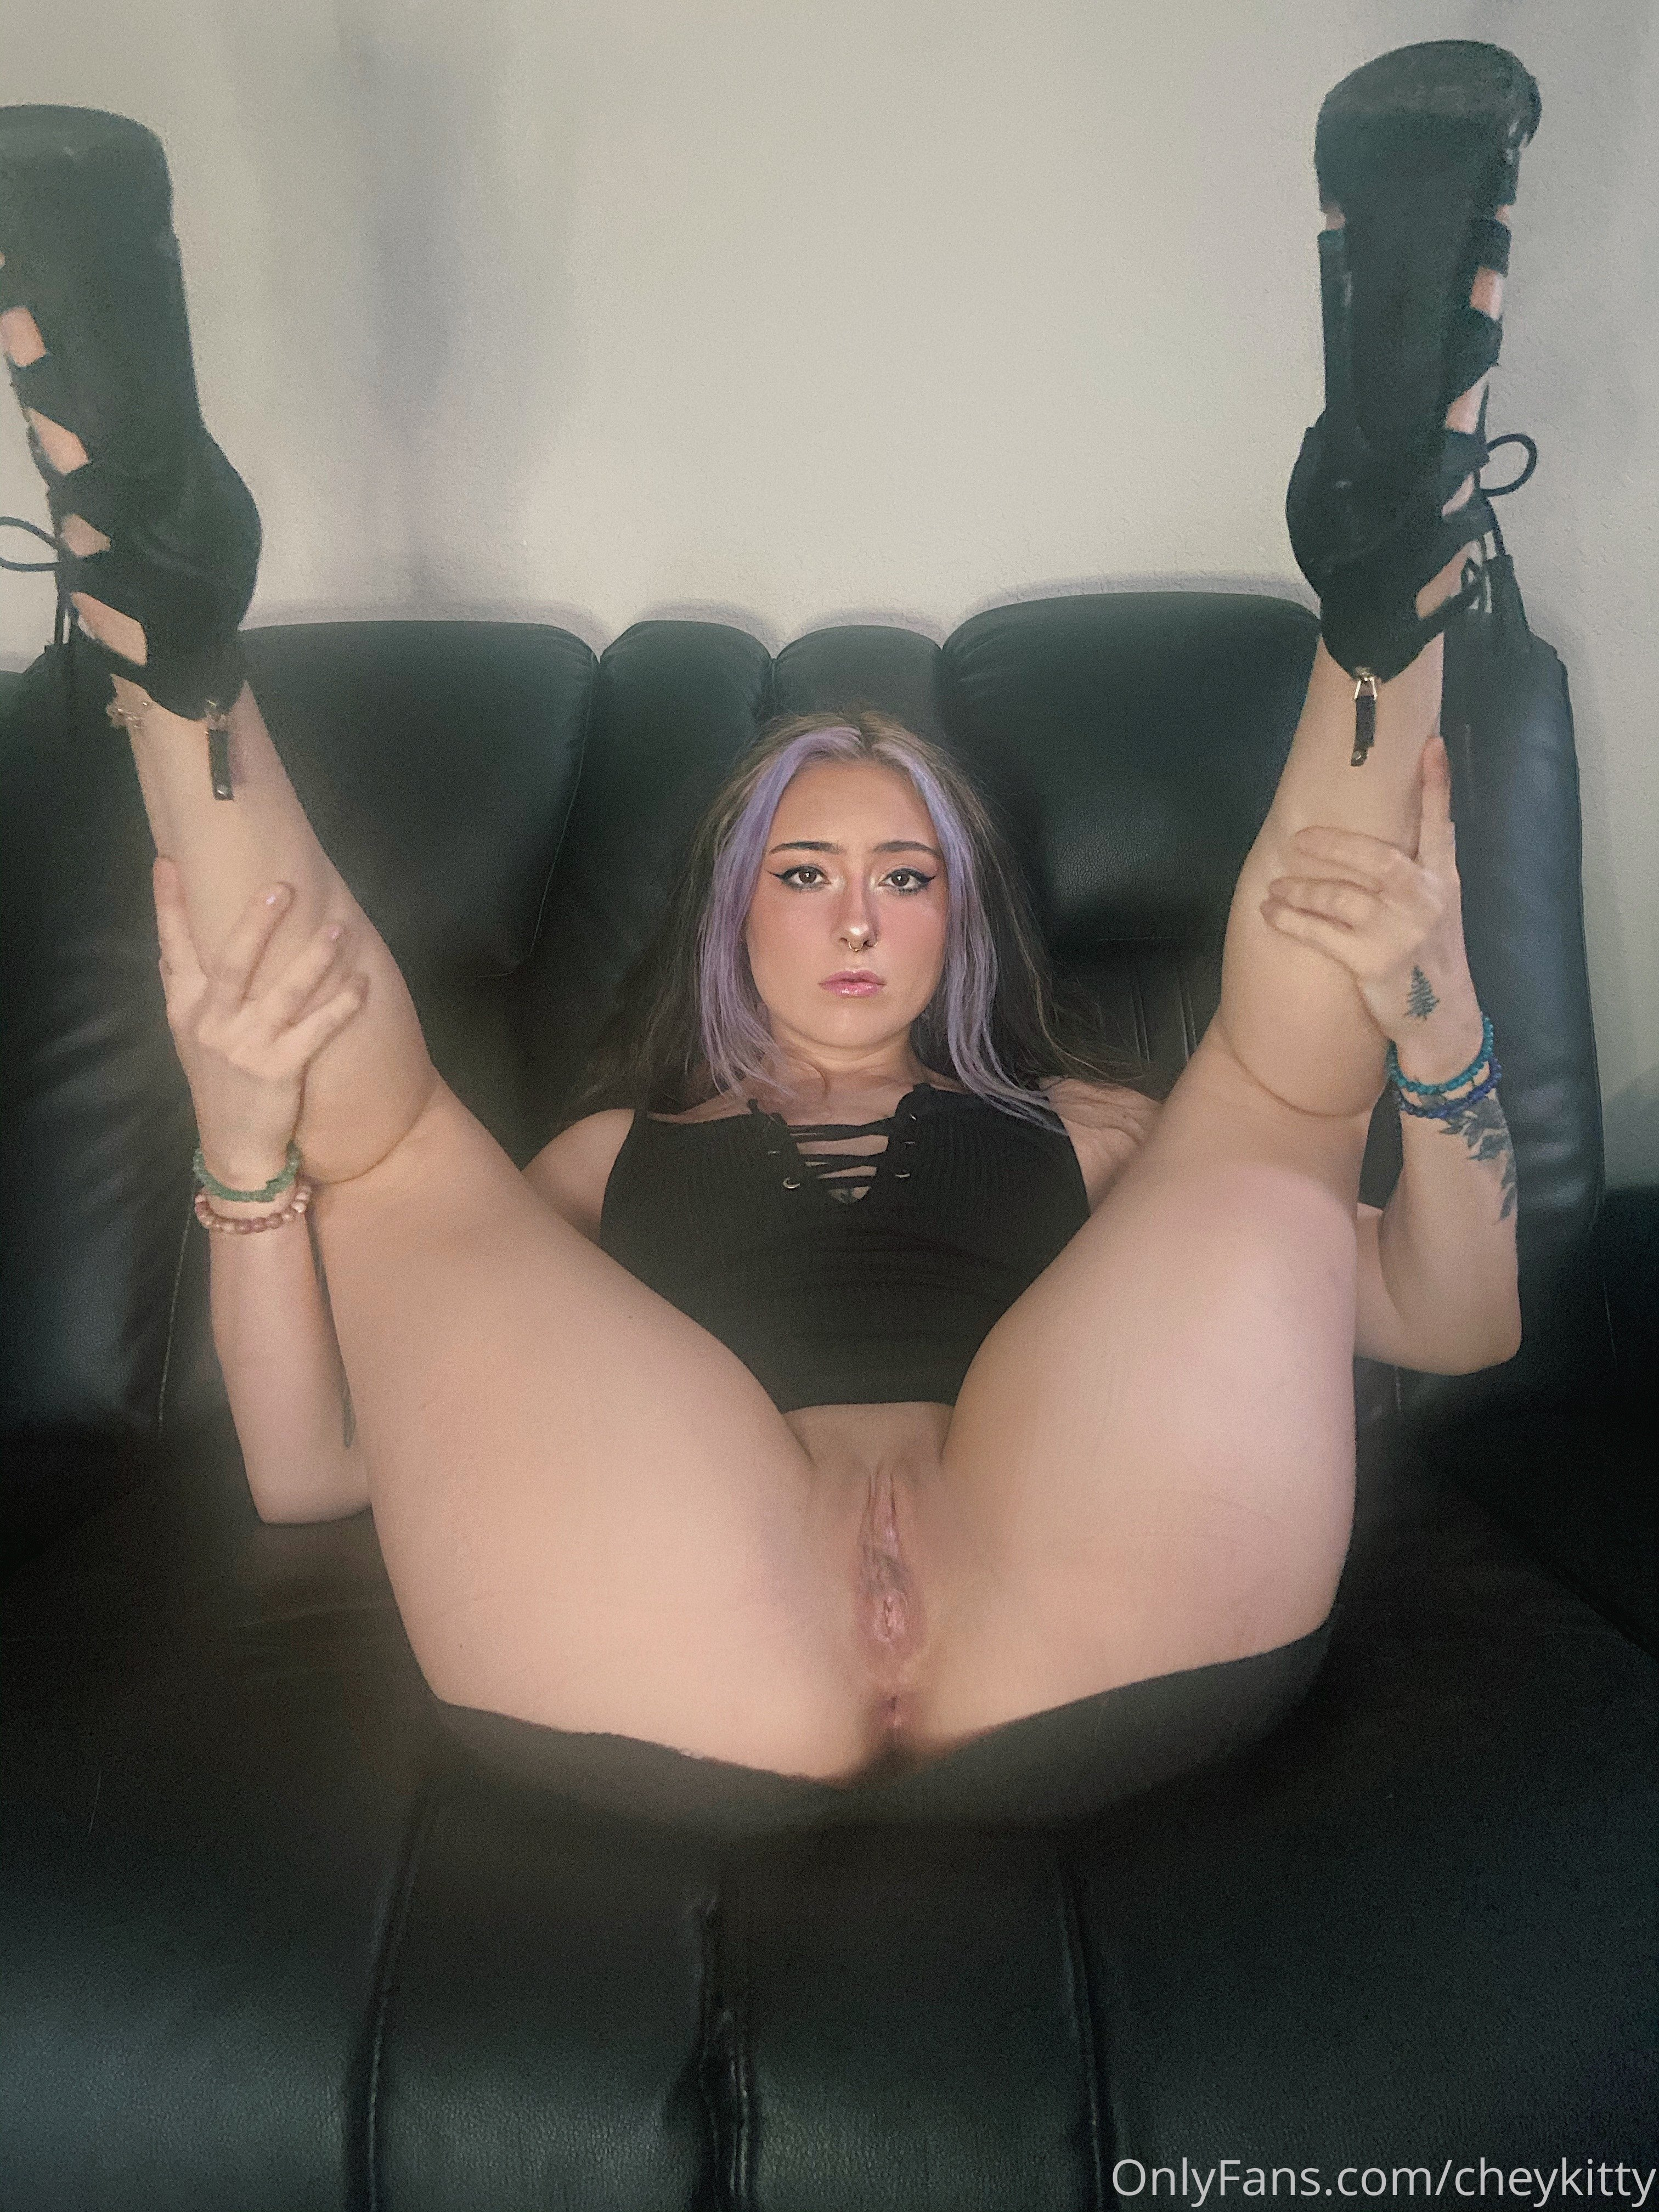 Cheykitty Onlyfans Leaked 0023